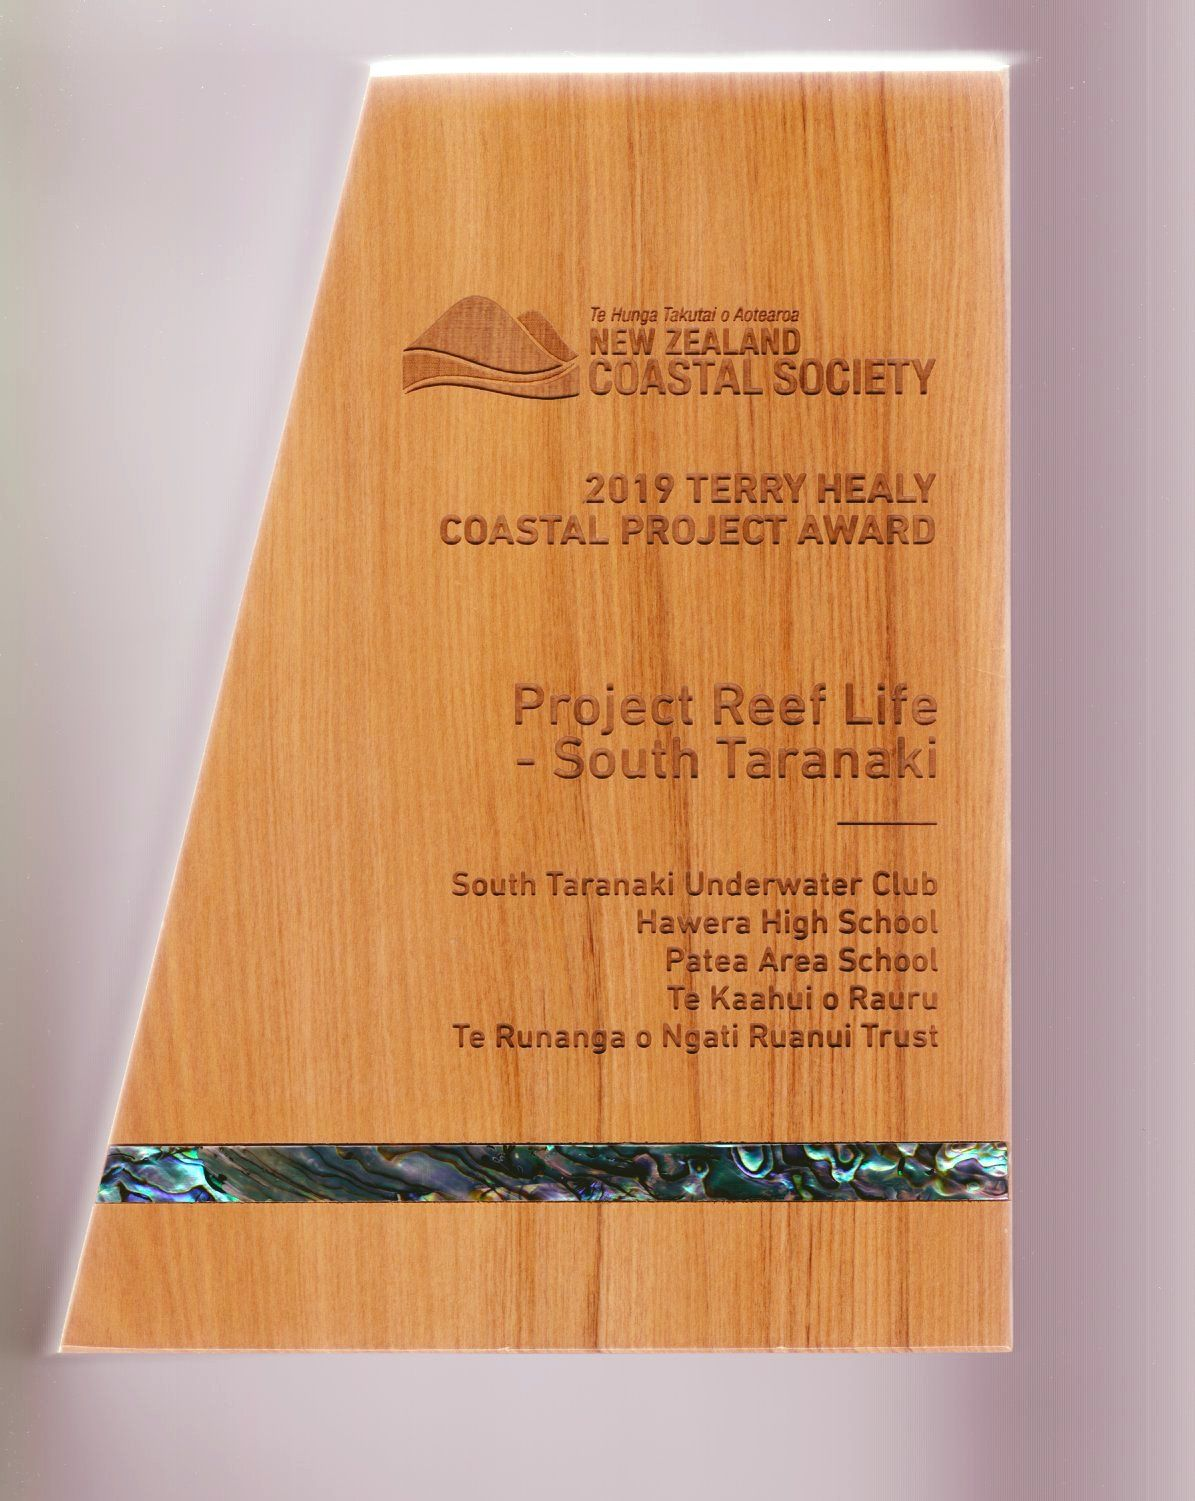 More awards for Project Reef Life